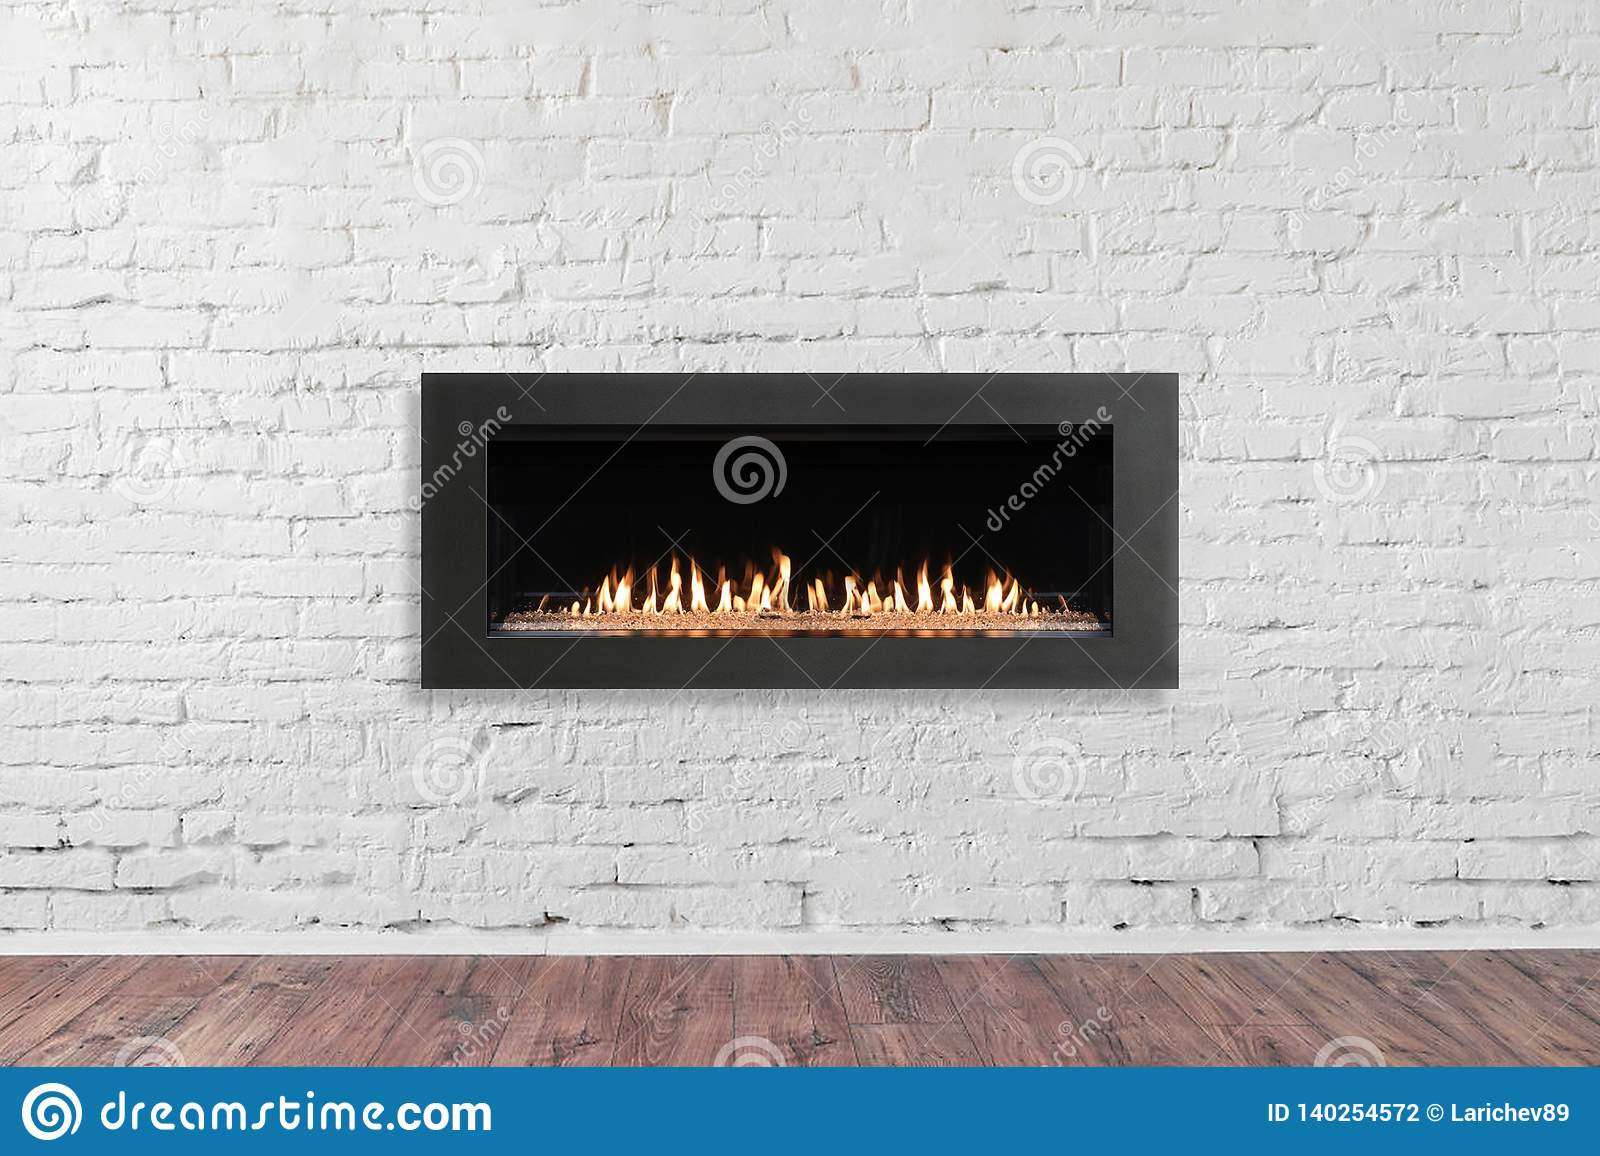 Gas Fireplace On White Brick Wall In Bright Empty Living Room Interior Of House Stock Photo Image Of Background Copy 140254572